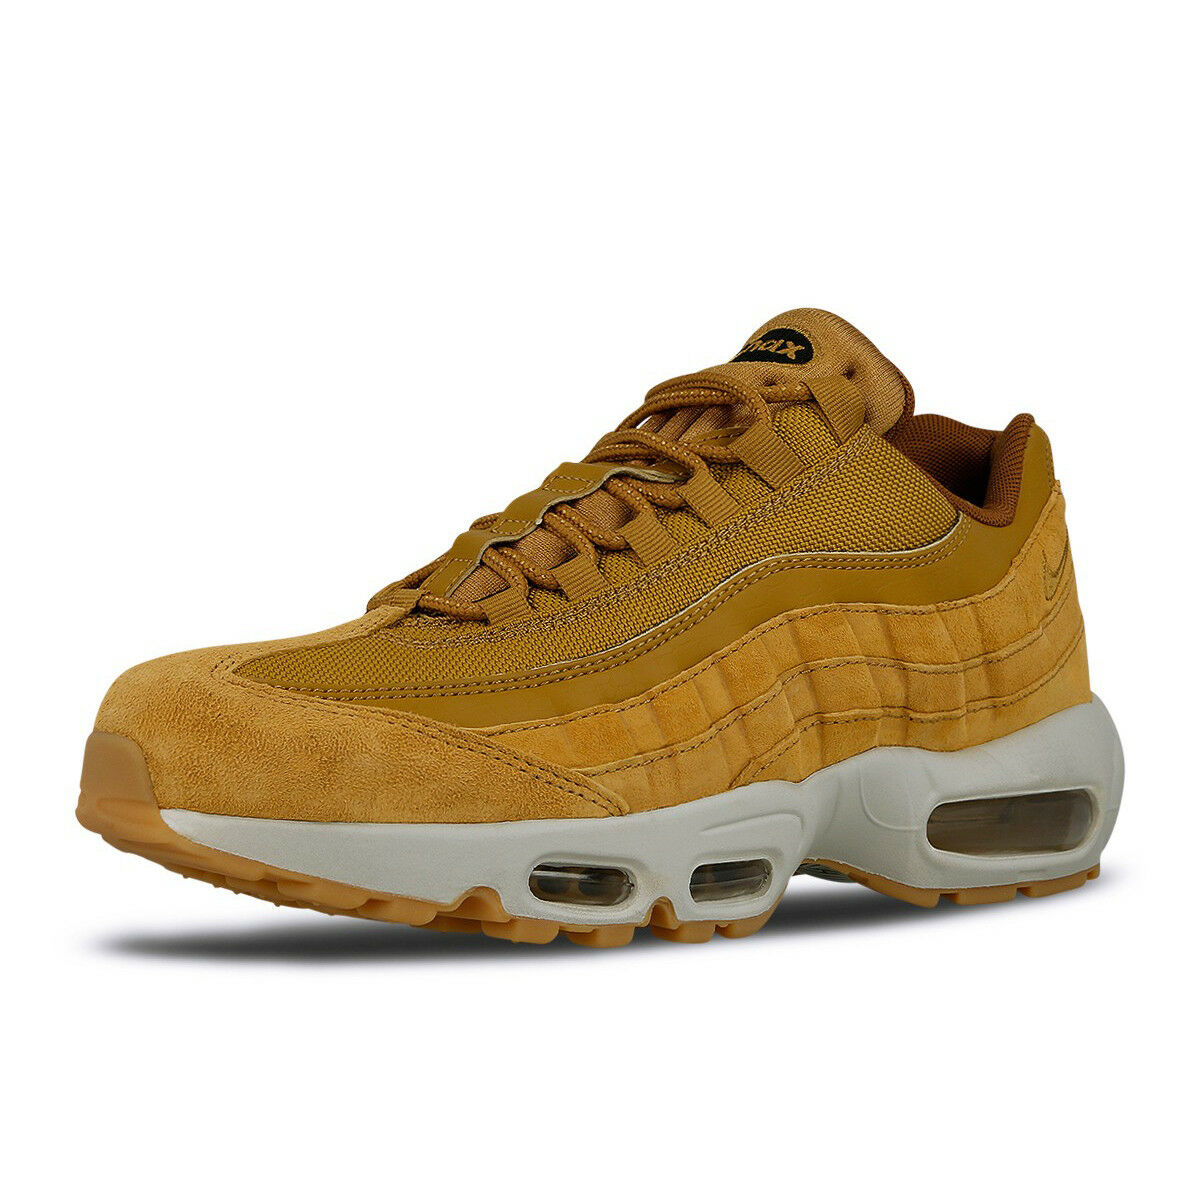 quality design 12bb3 1c887 Nike Mens Air Max 95 SE Wheat Pack Light Bone Running Shoes Sneakers  AJ2018-700